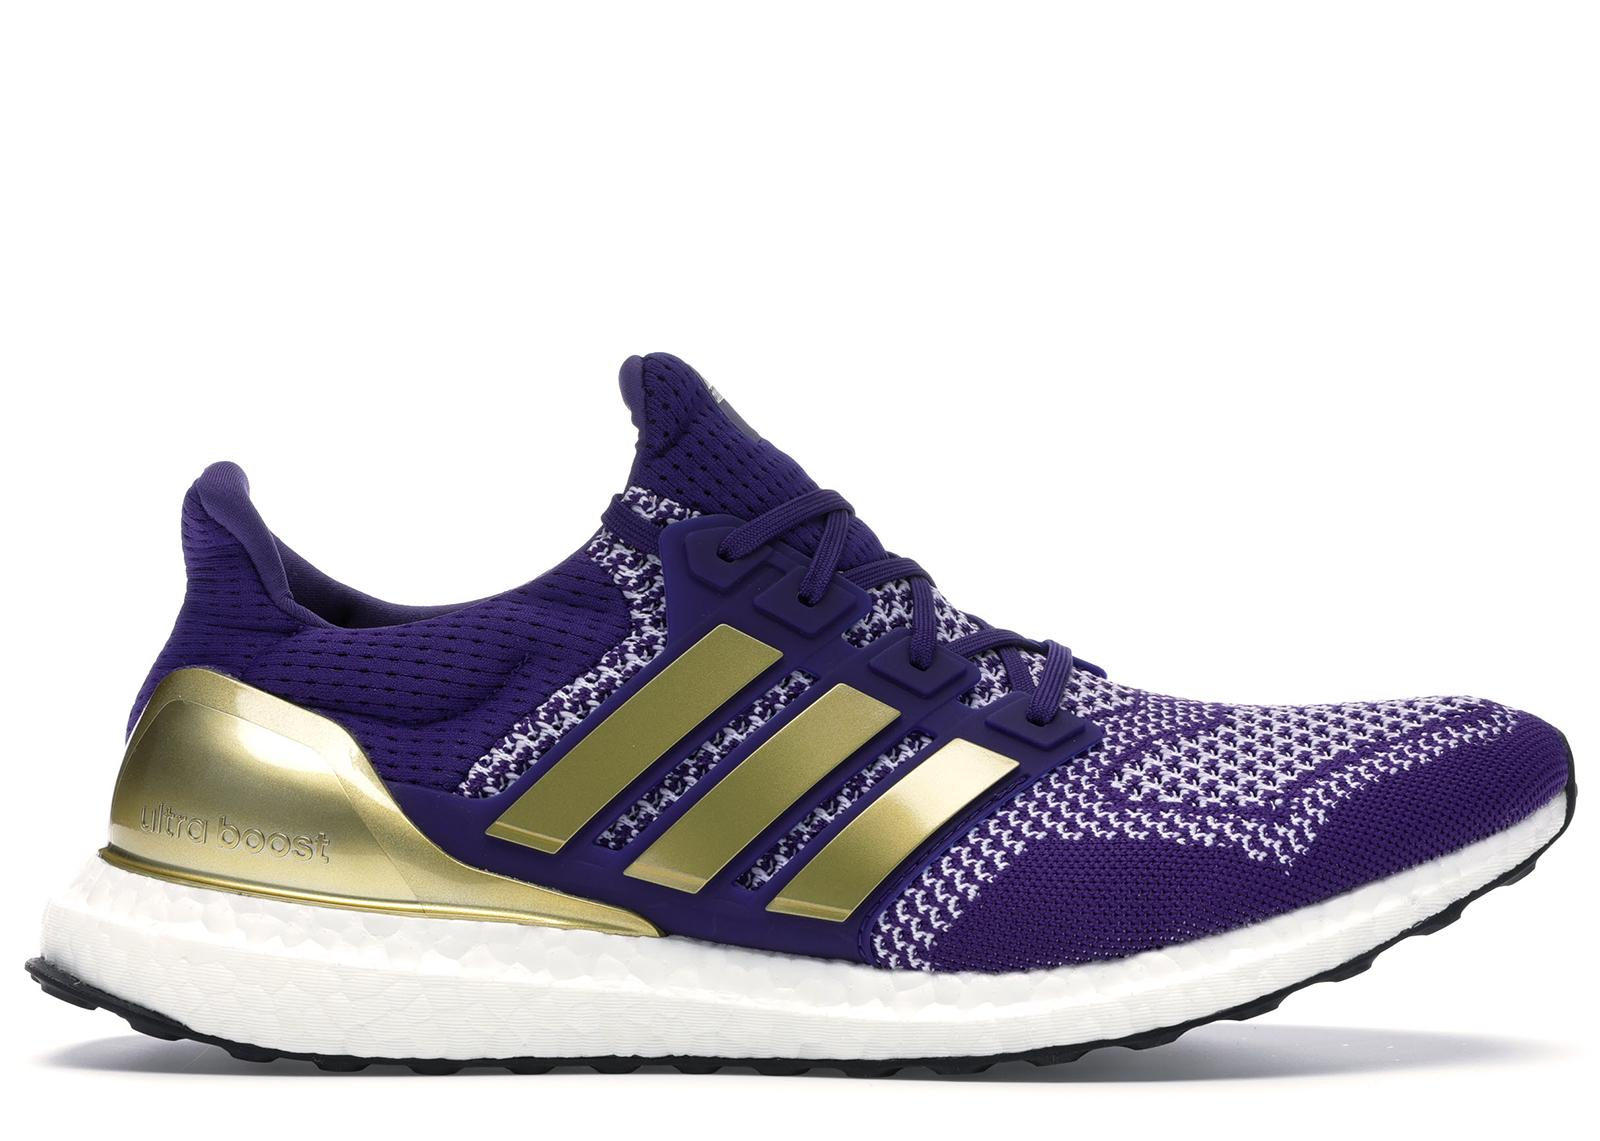 adidas boost violet